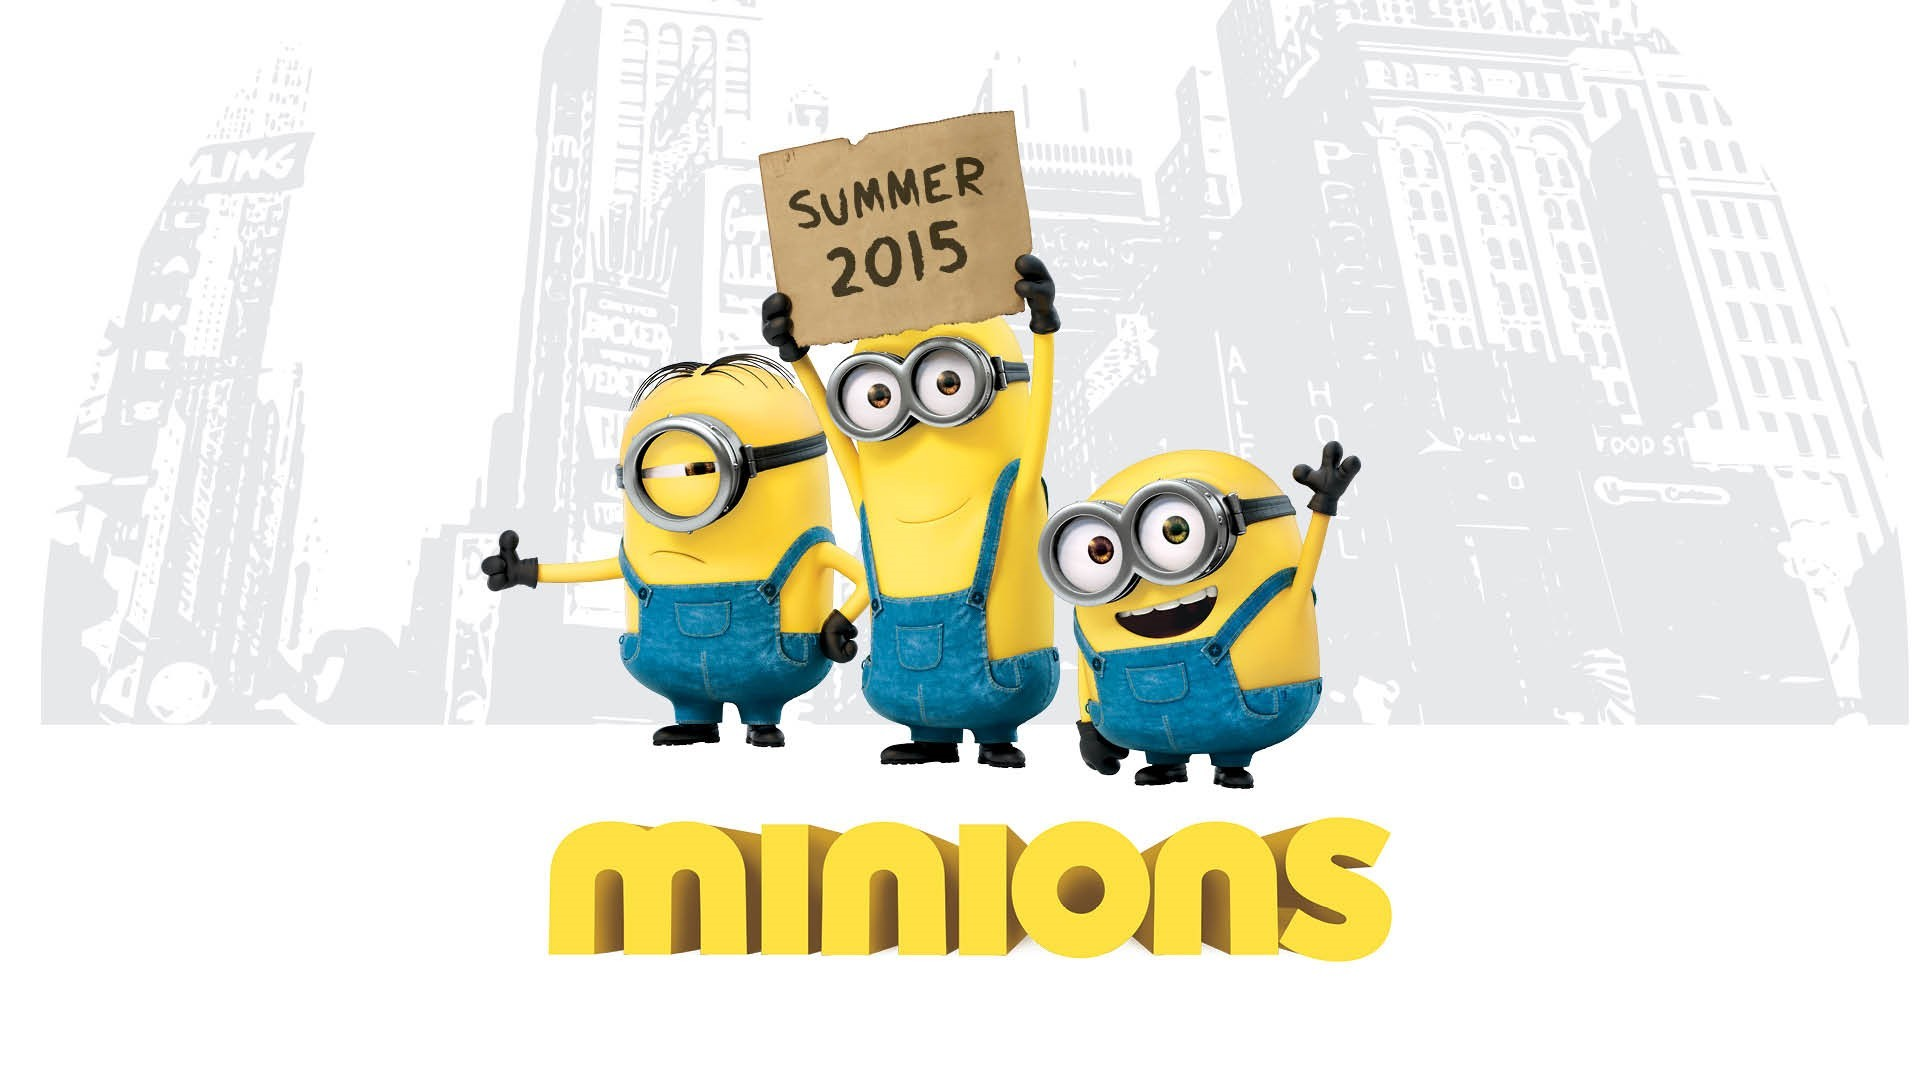 Minions Movie Debuts in Theaters With Superb Soundtrack